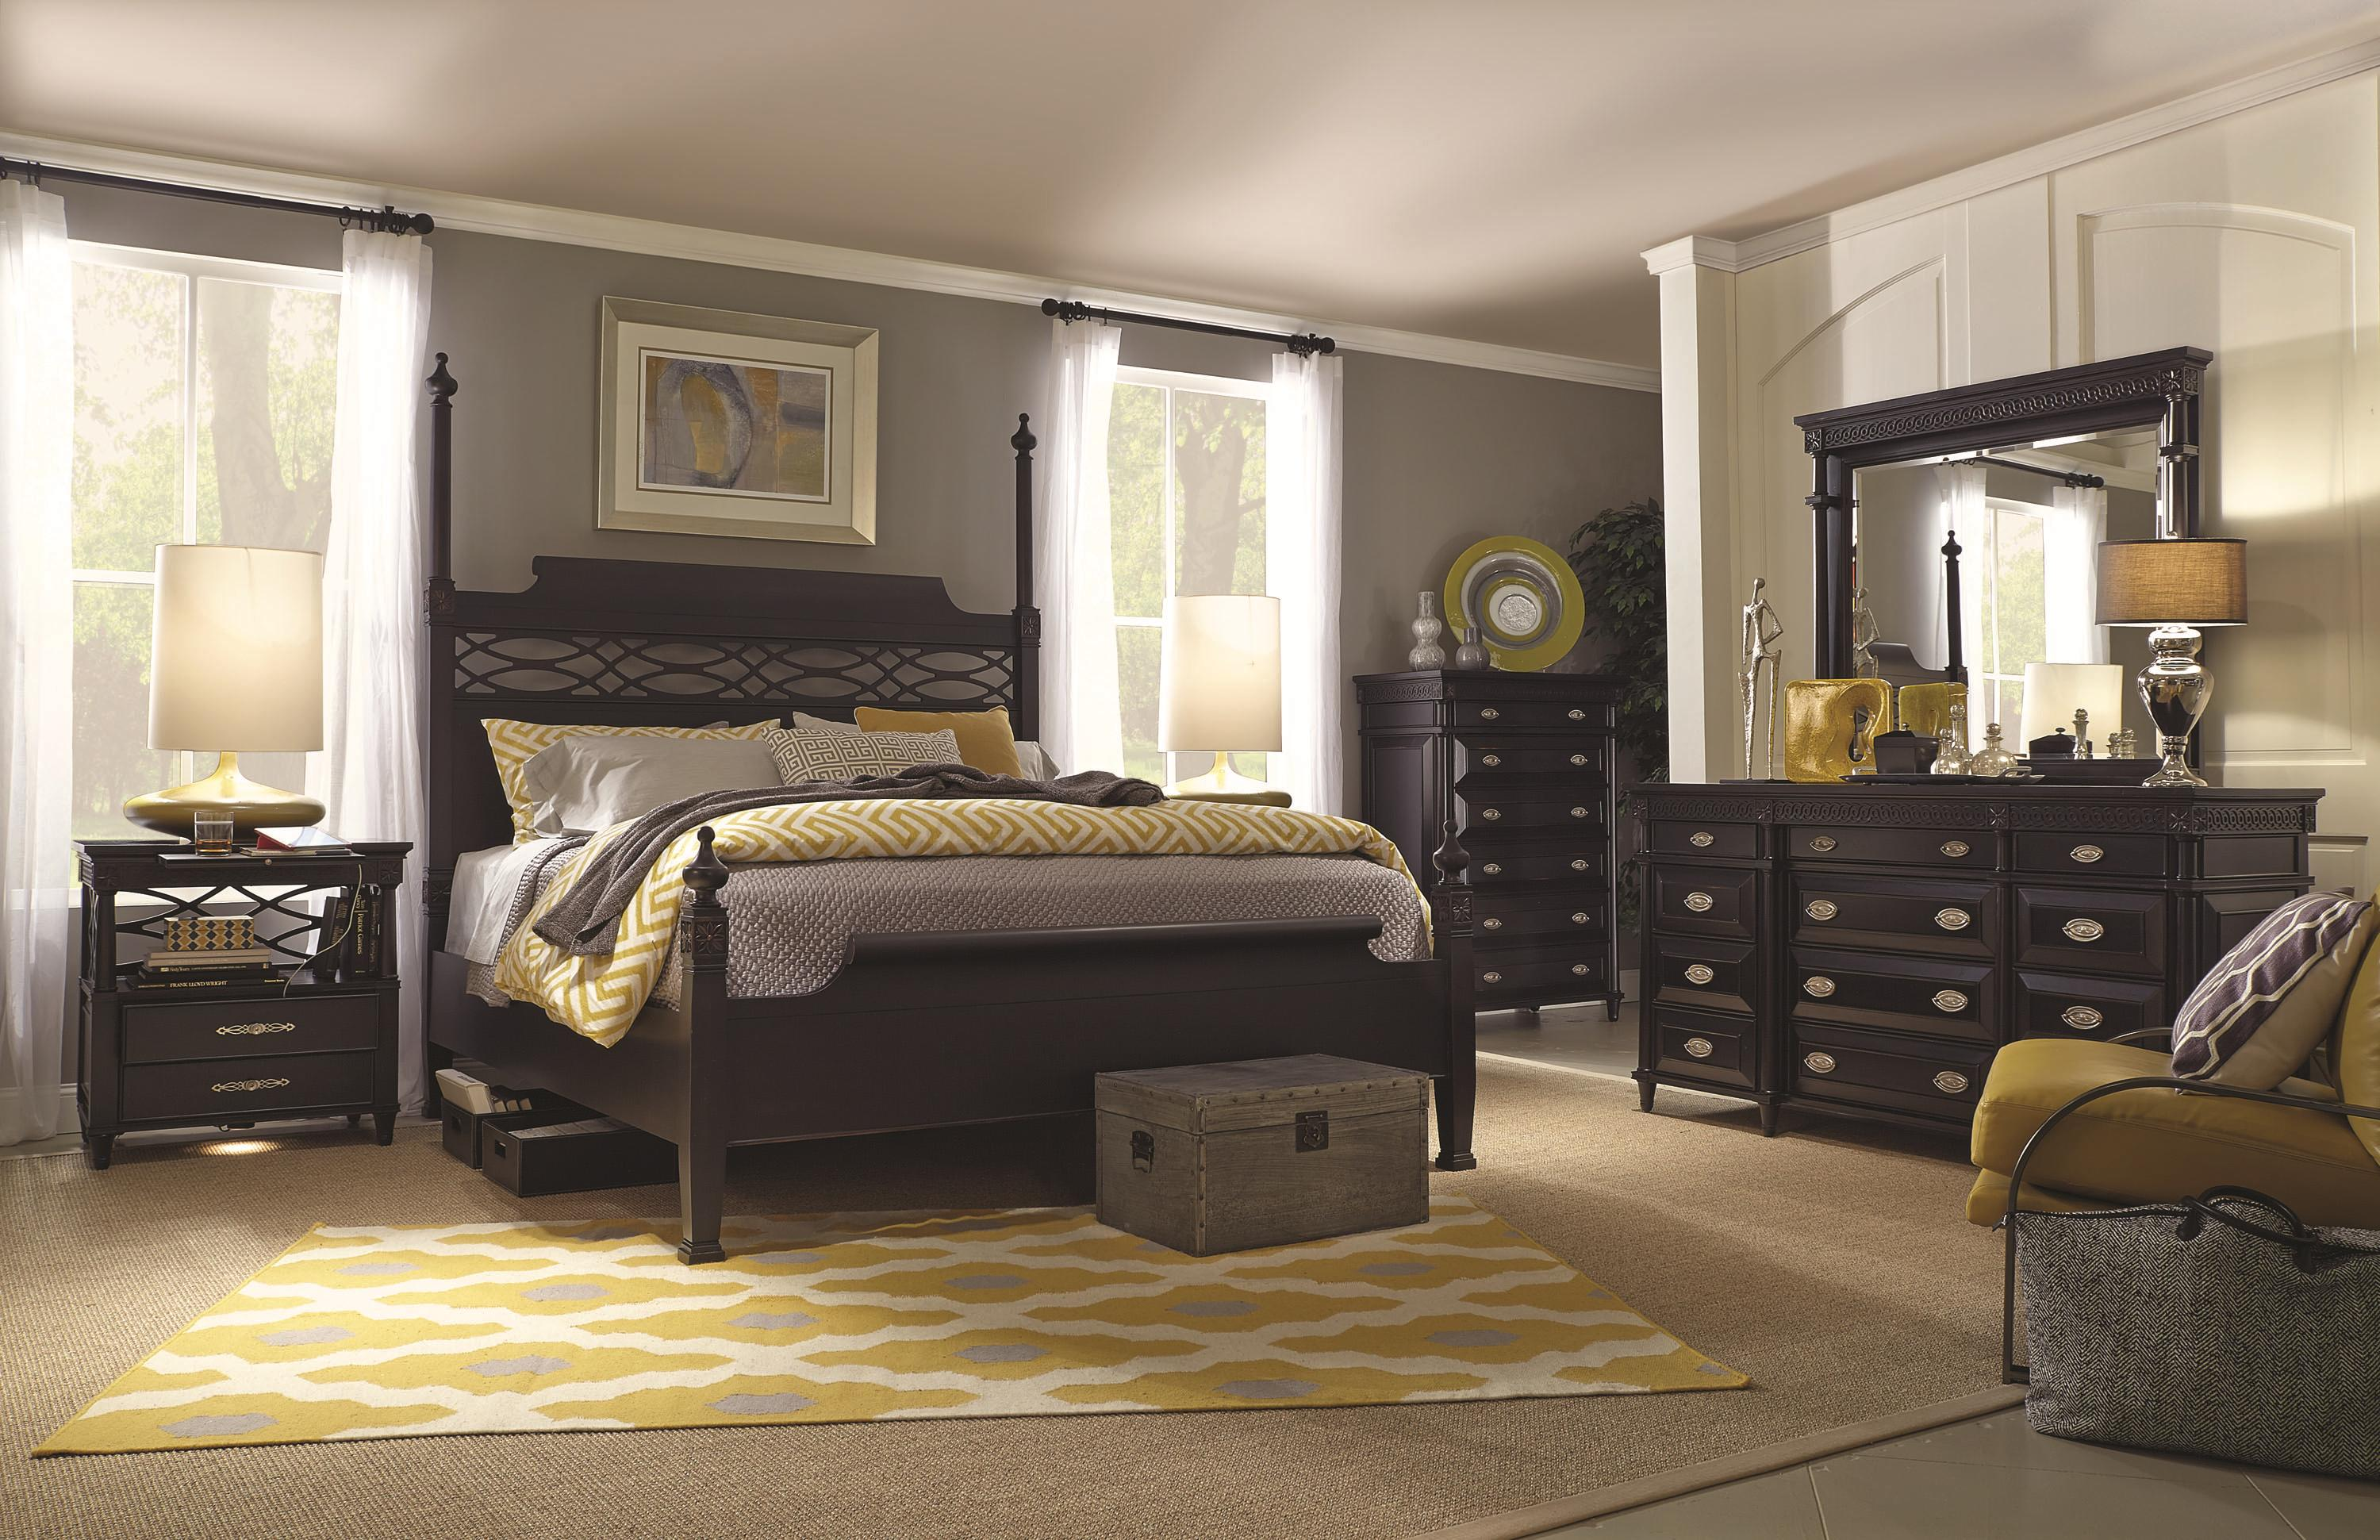 Aspenhome Young Classics King Bedroom Group - Item Number: I88 K Bedroom Group 4